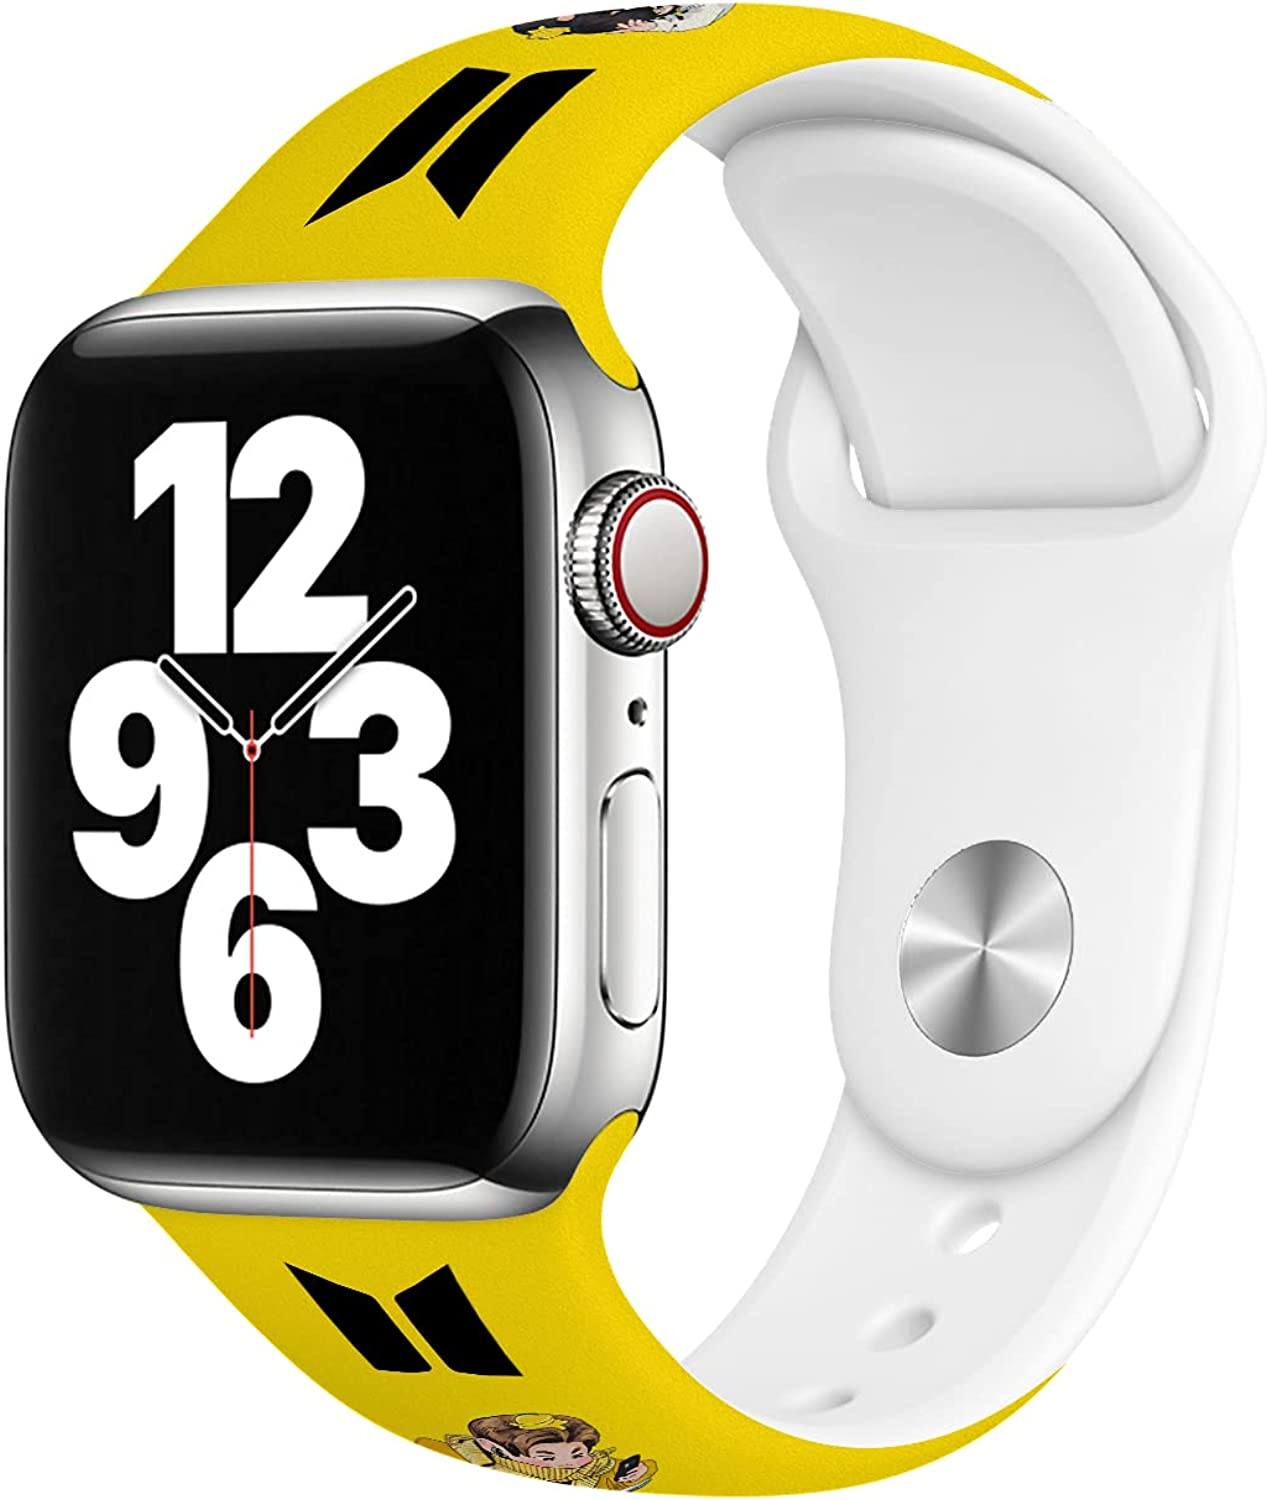 B-T-S Bands Compatible with Apple Watch Band 38mm 40mm 42mm 44mm, Soft Silicone Sport Replacement Strap Compatible with iWatch Series 6 5 4 3 2 1 SE Women Men White